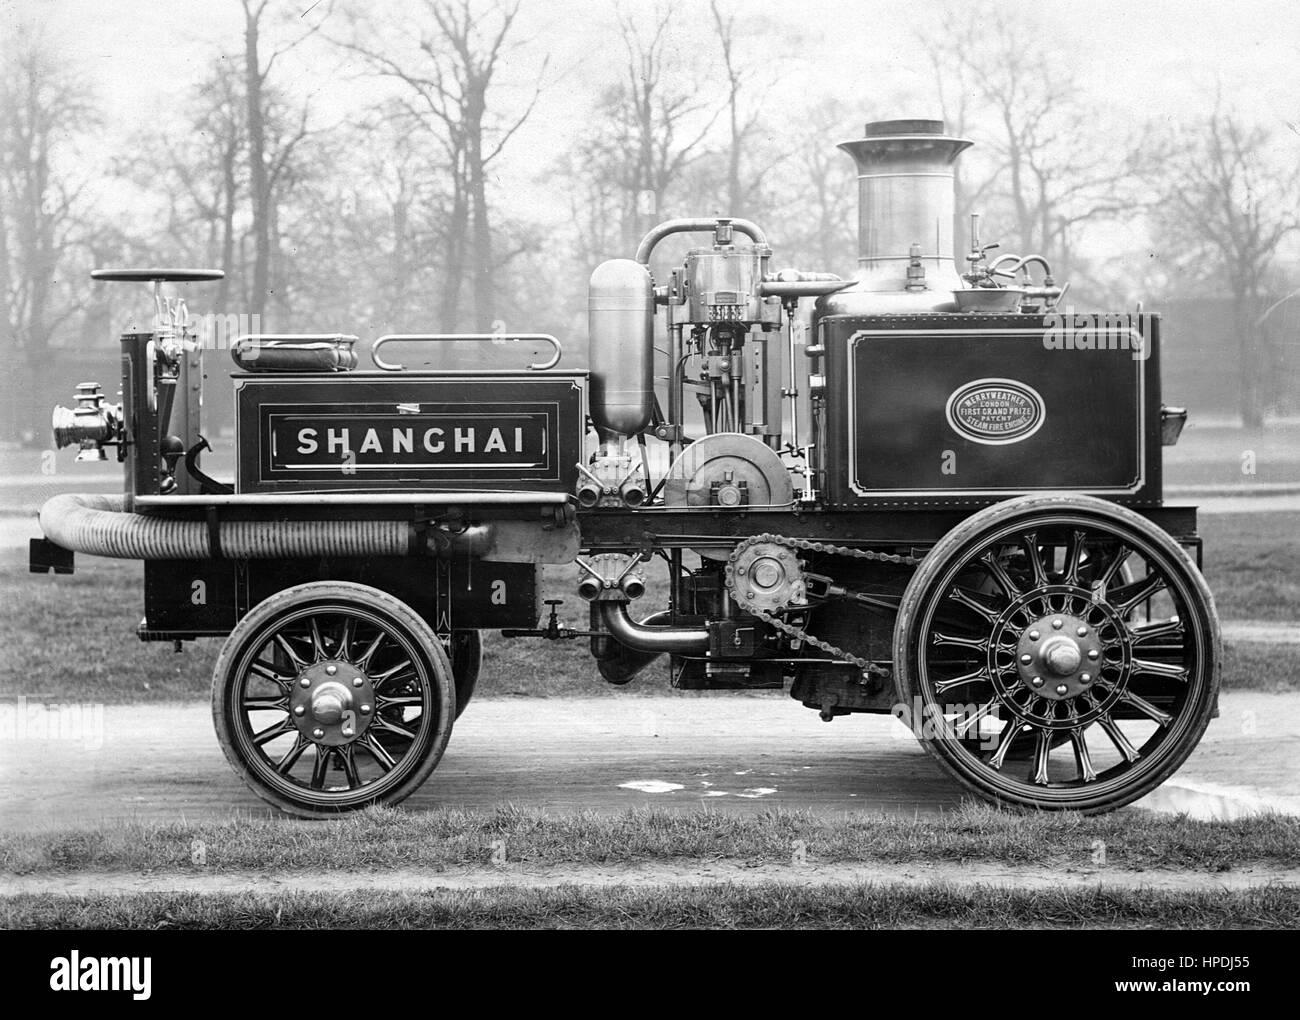 Merryweather fire engine steam 1904 - Stock Image